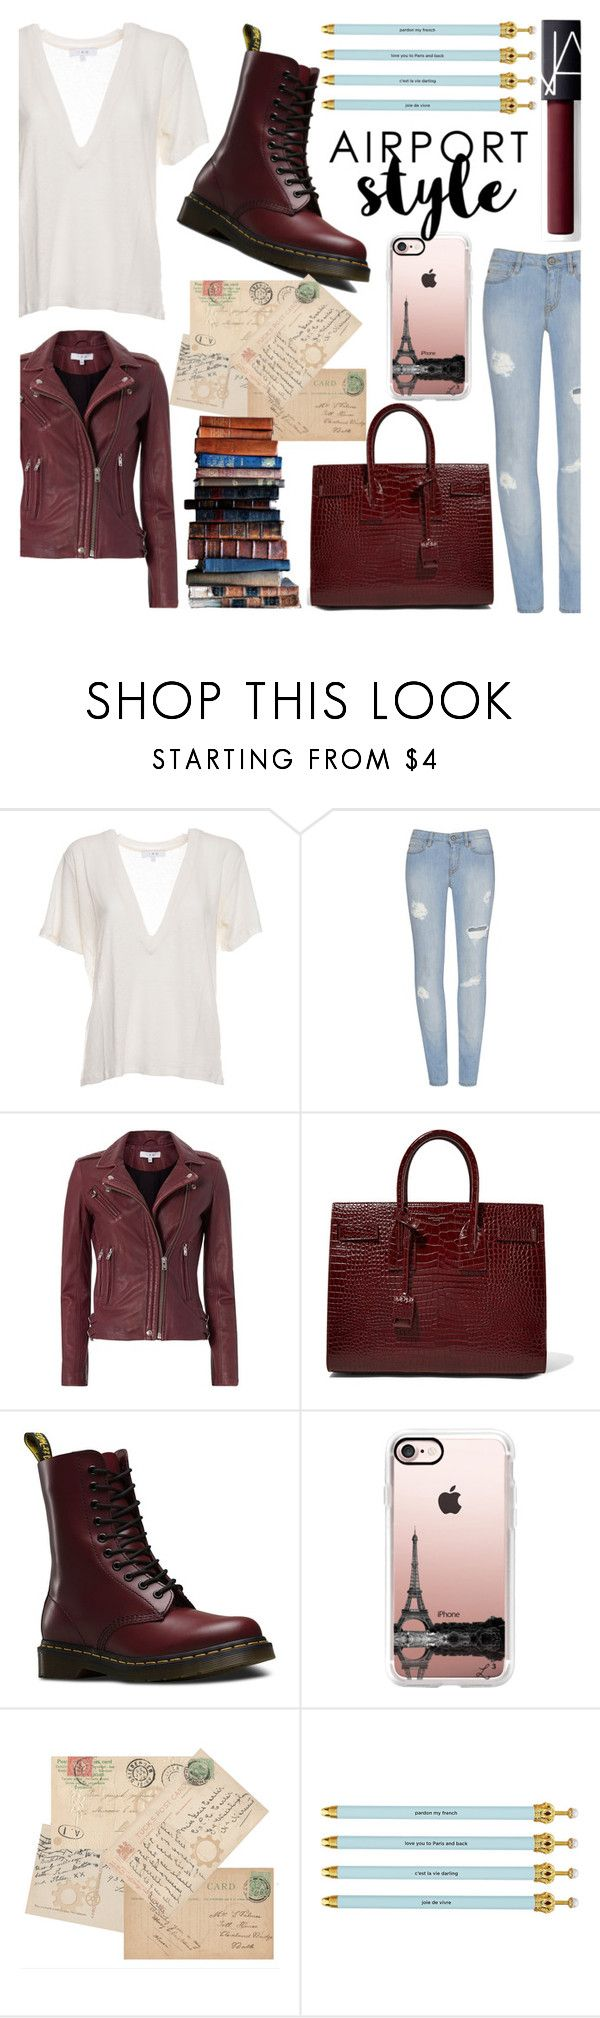 """Airport Style II"" by bezaliel ❤ liked on Polyvore featuring IRO, Yves Saint Laurent, Dr. Martens, Casetify, Santa Barbara Design Studio, NARS Cosmetics and airportstyle"